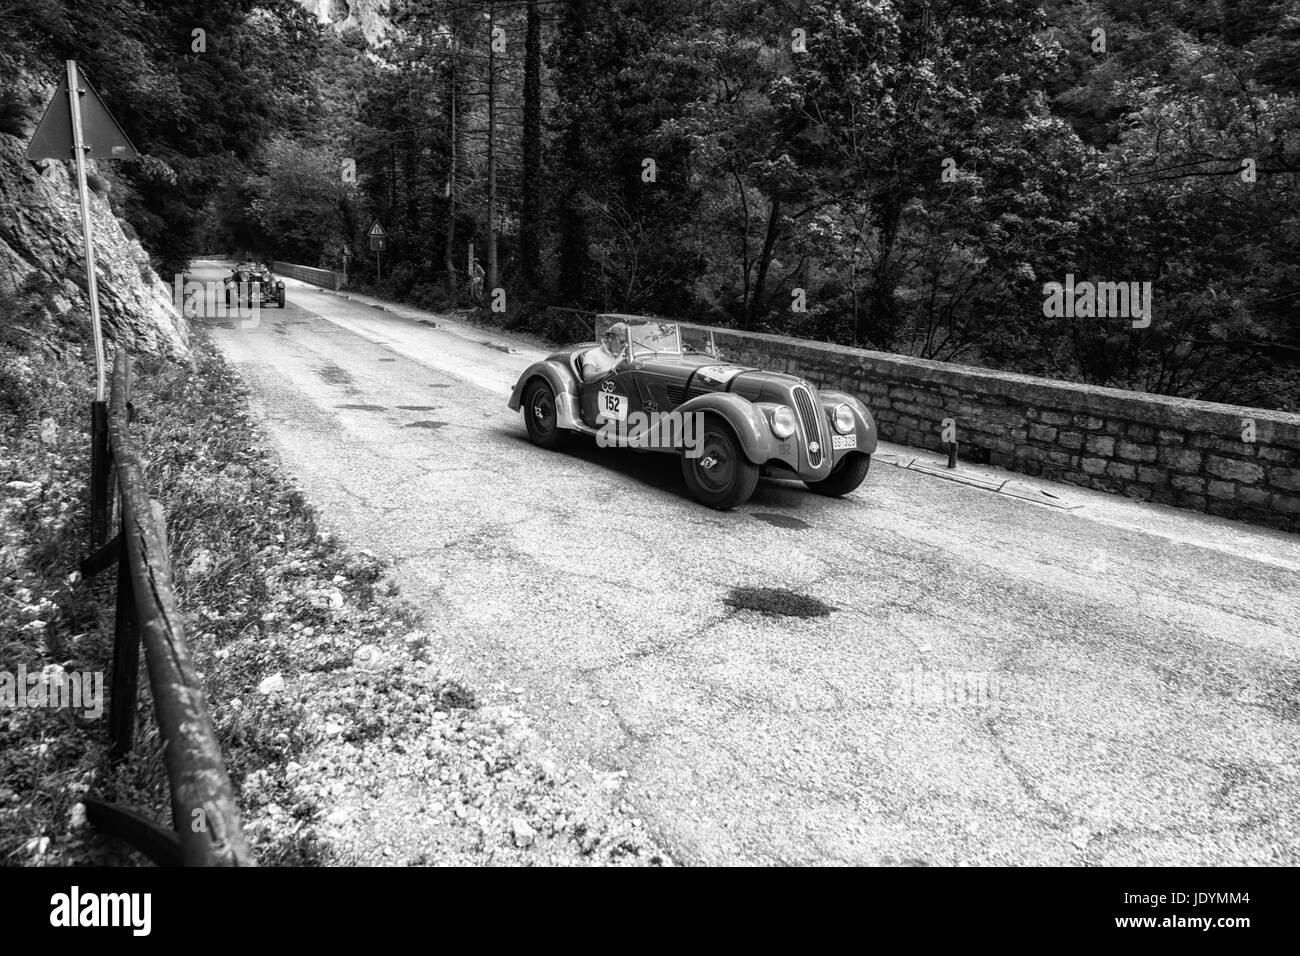 BMW 328 1939 on an old racing car in rally Mille Miglia 2017 the famous italian historical race (1927-1957) on May - Stock Image